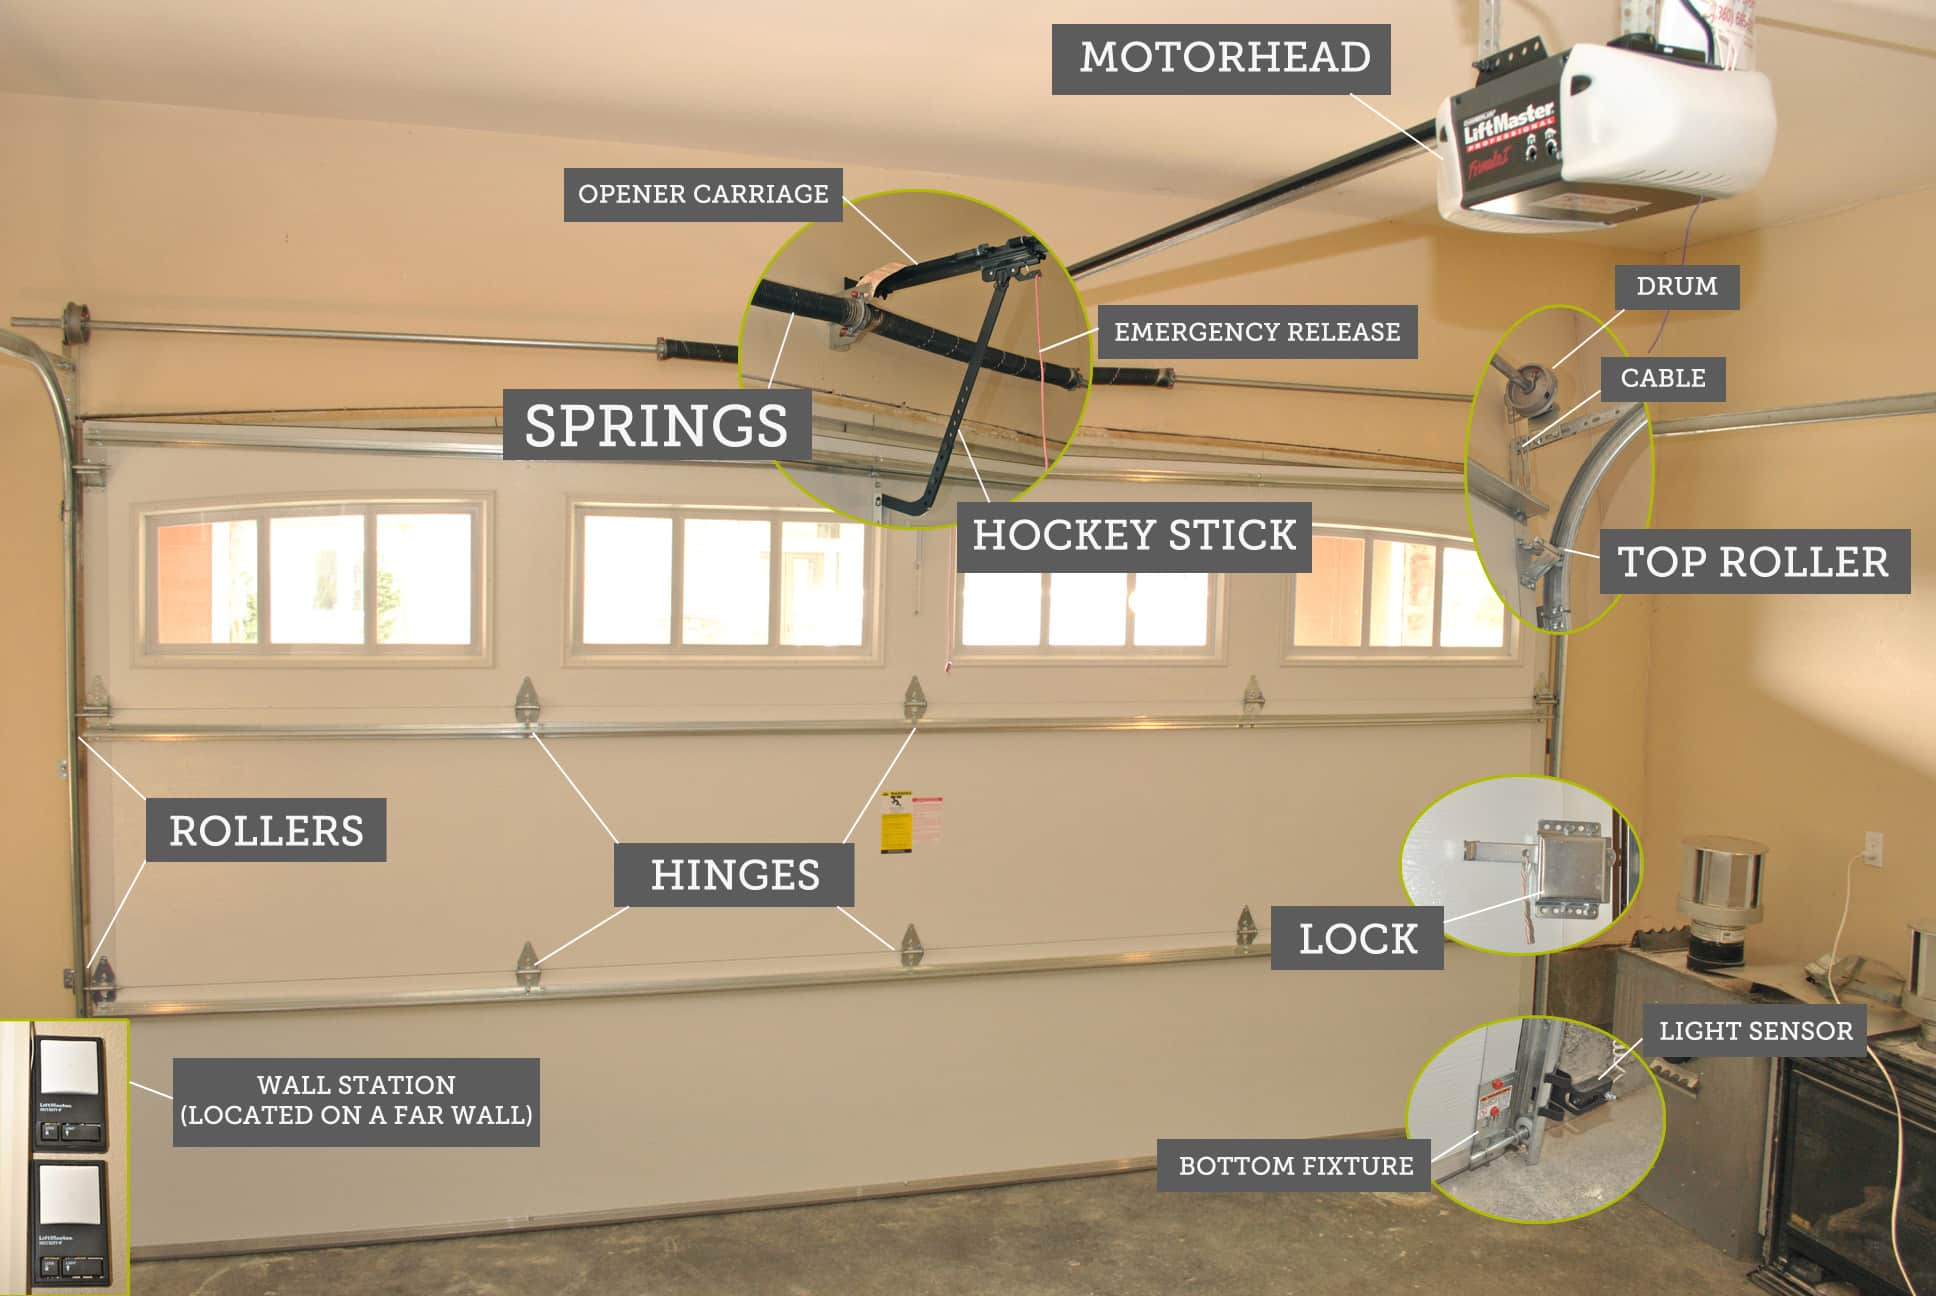 How To Troubleshoot Garage Door Problems